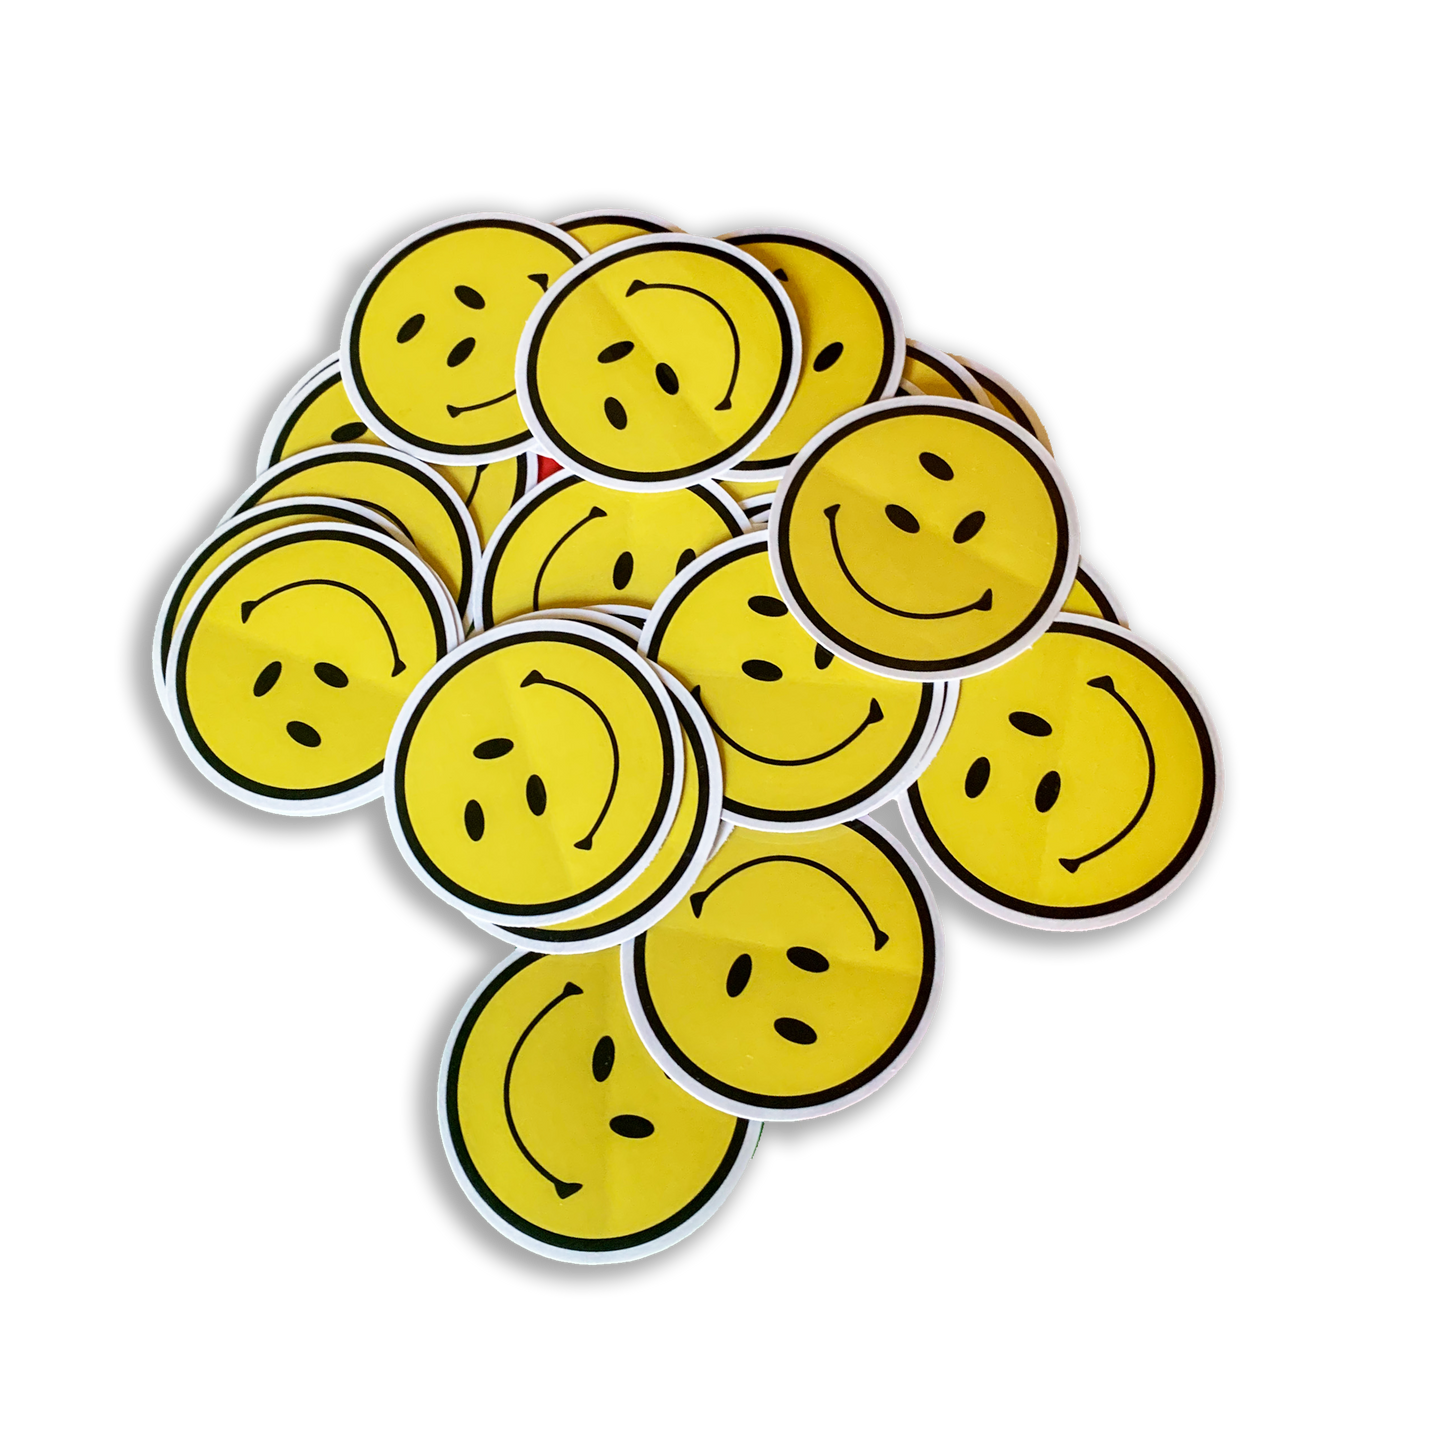 SMILEY STICKERS (5 PACK)